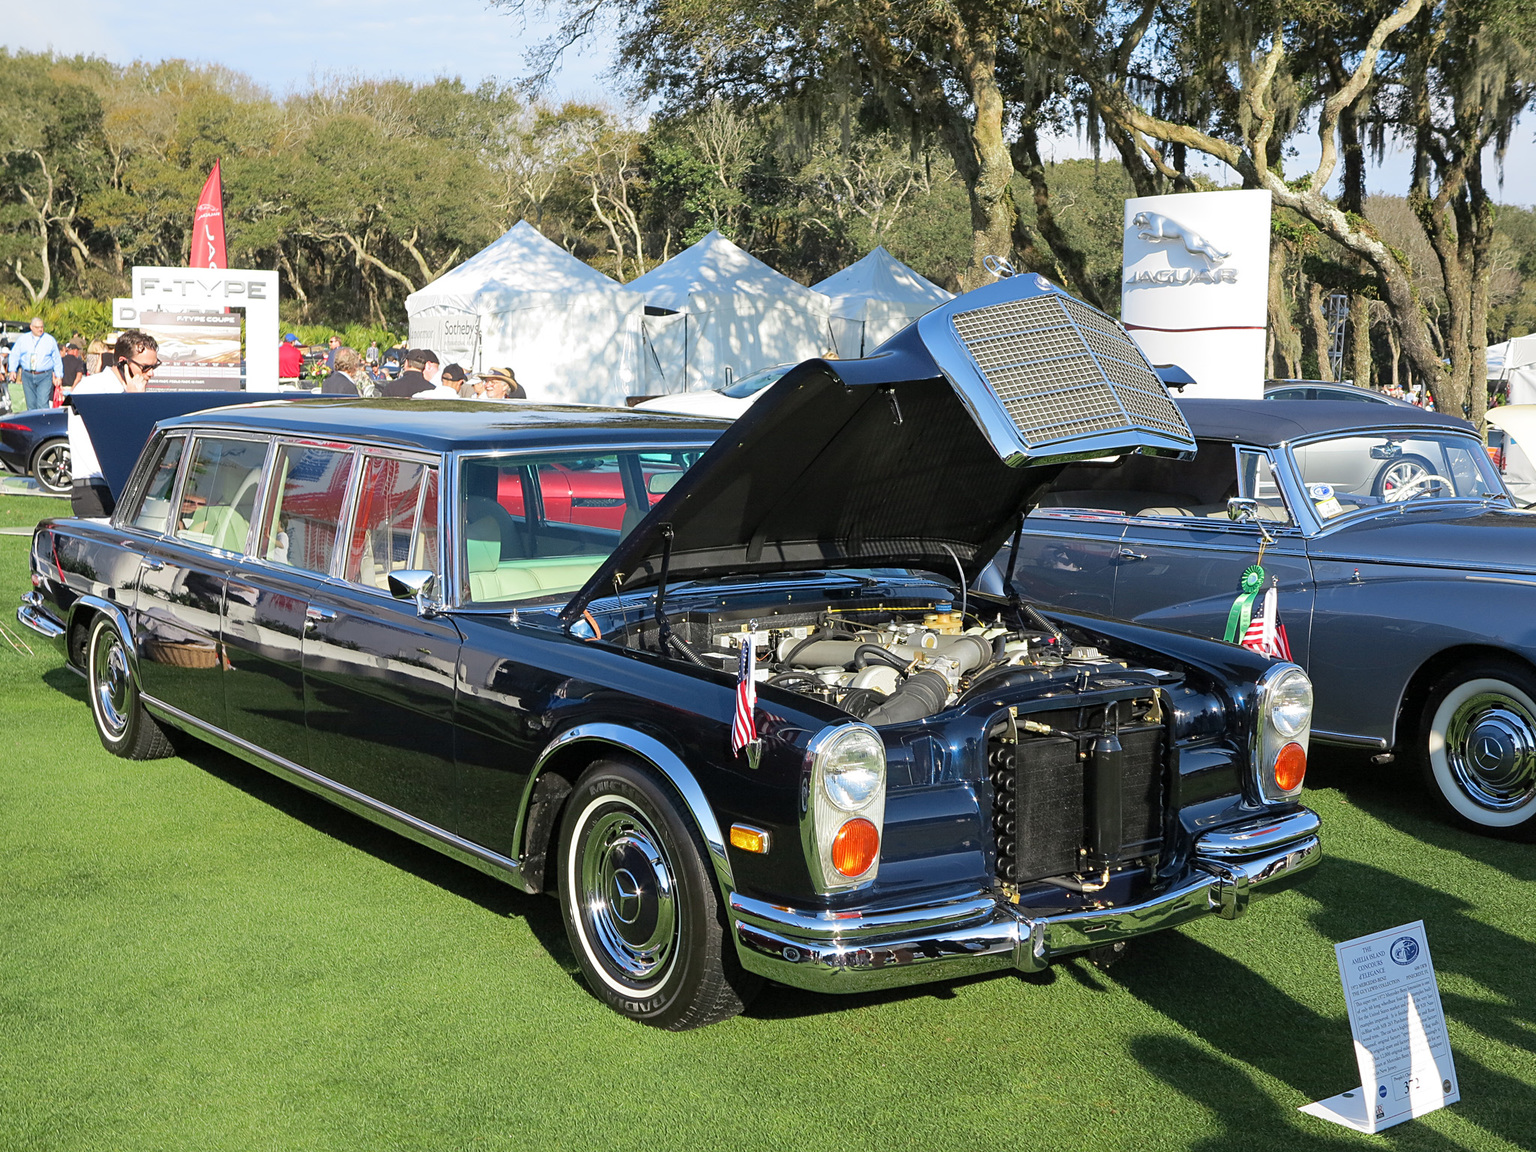 Toyota Of Pullman >> 1963 Mercedes-Benz 600 Pullman Limousine Gallery | Gallery | SuperCars.net